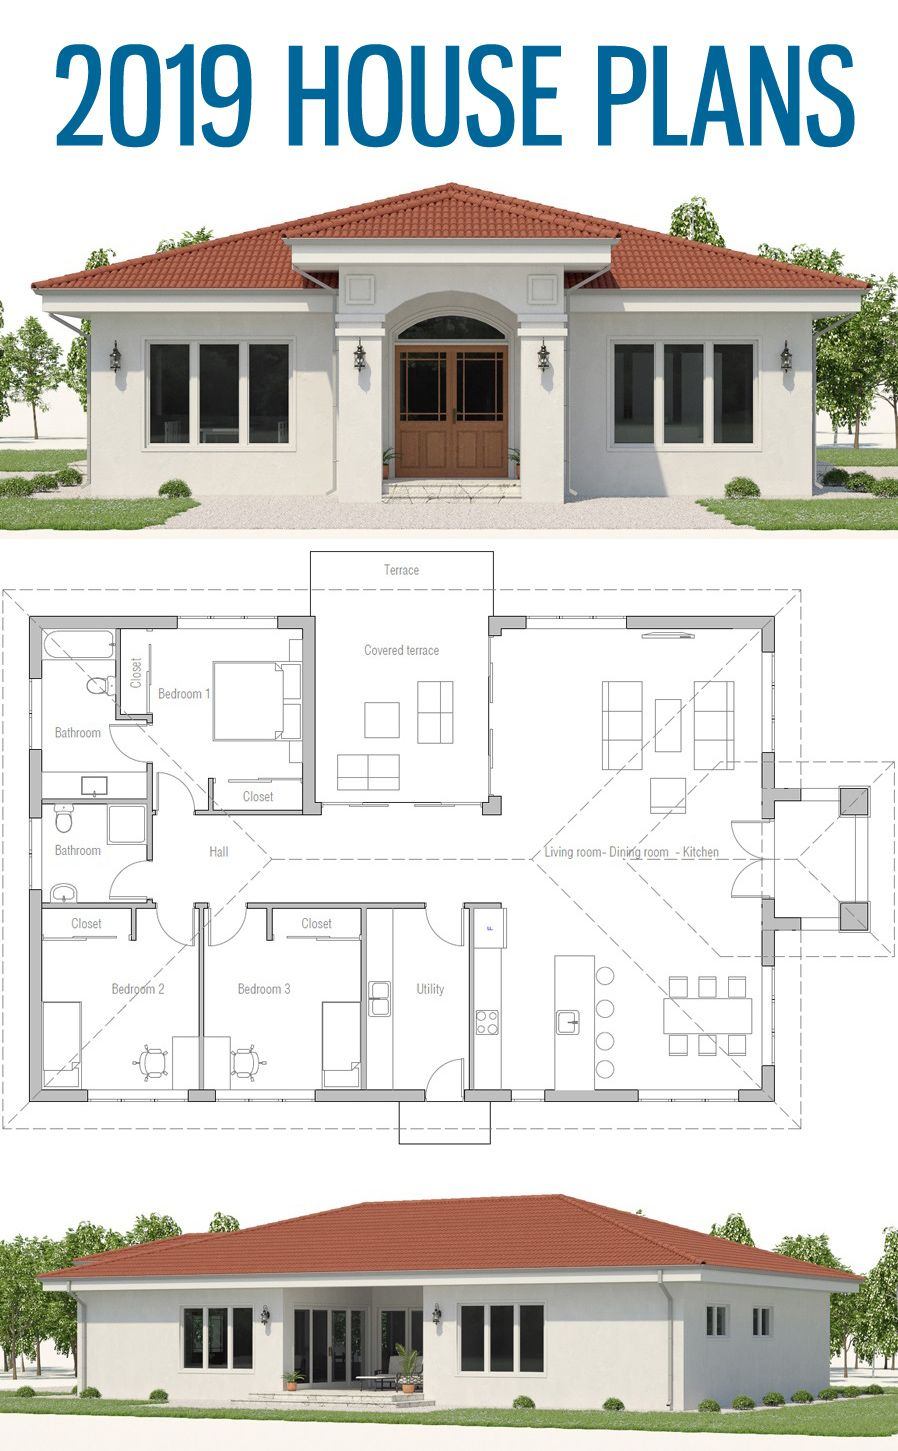 Home Design Ideas For 2019: House Plans, Single Strory Home Plan, House Plans 2019